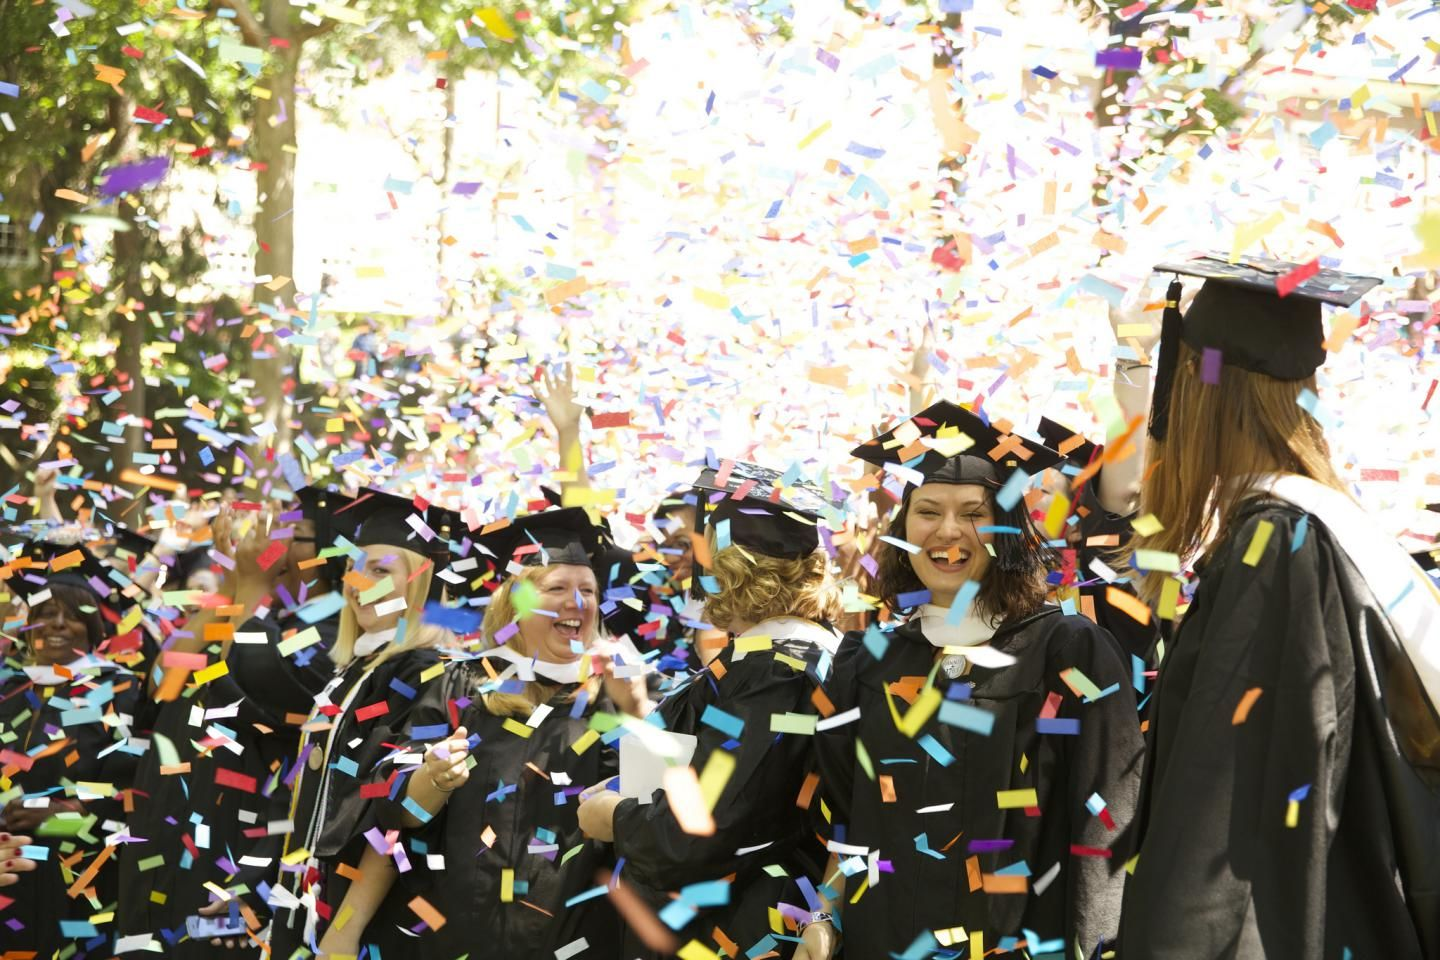 the famous confetti toss at commencement delights with an explosion of colors fluttering down from above